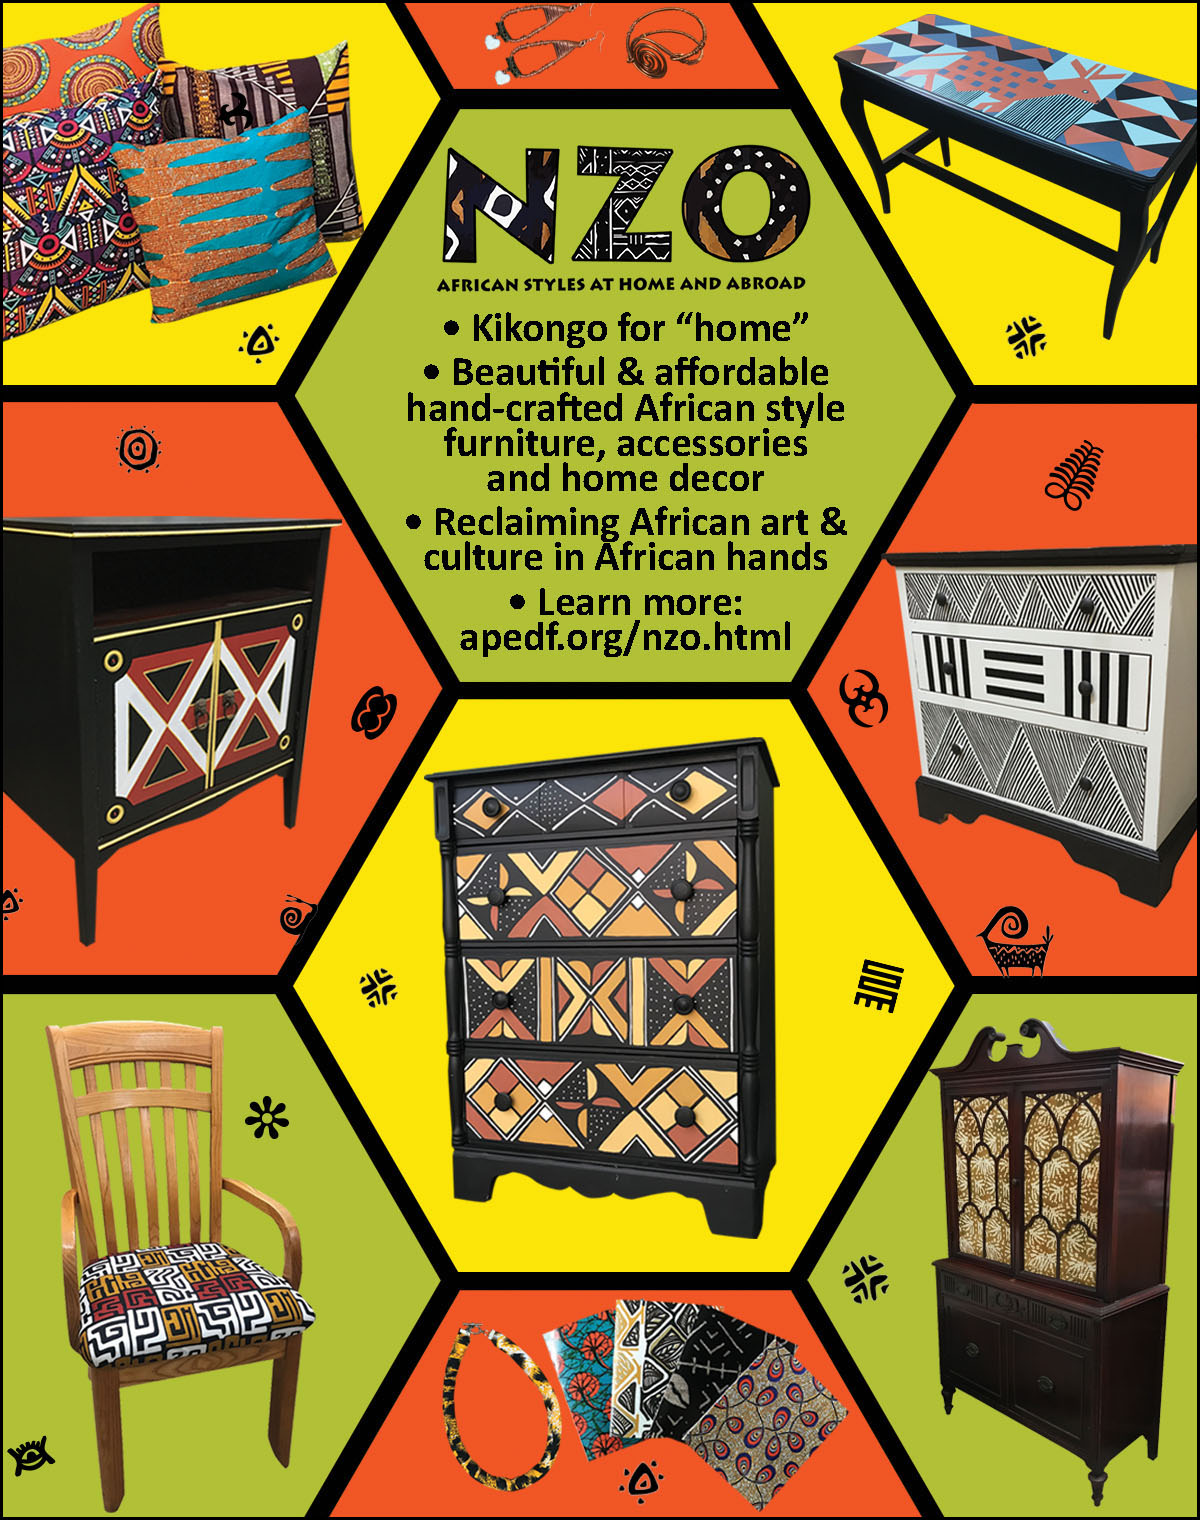 NZO - African Styles at Home & Abroad!